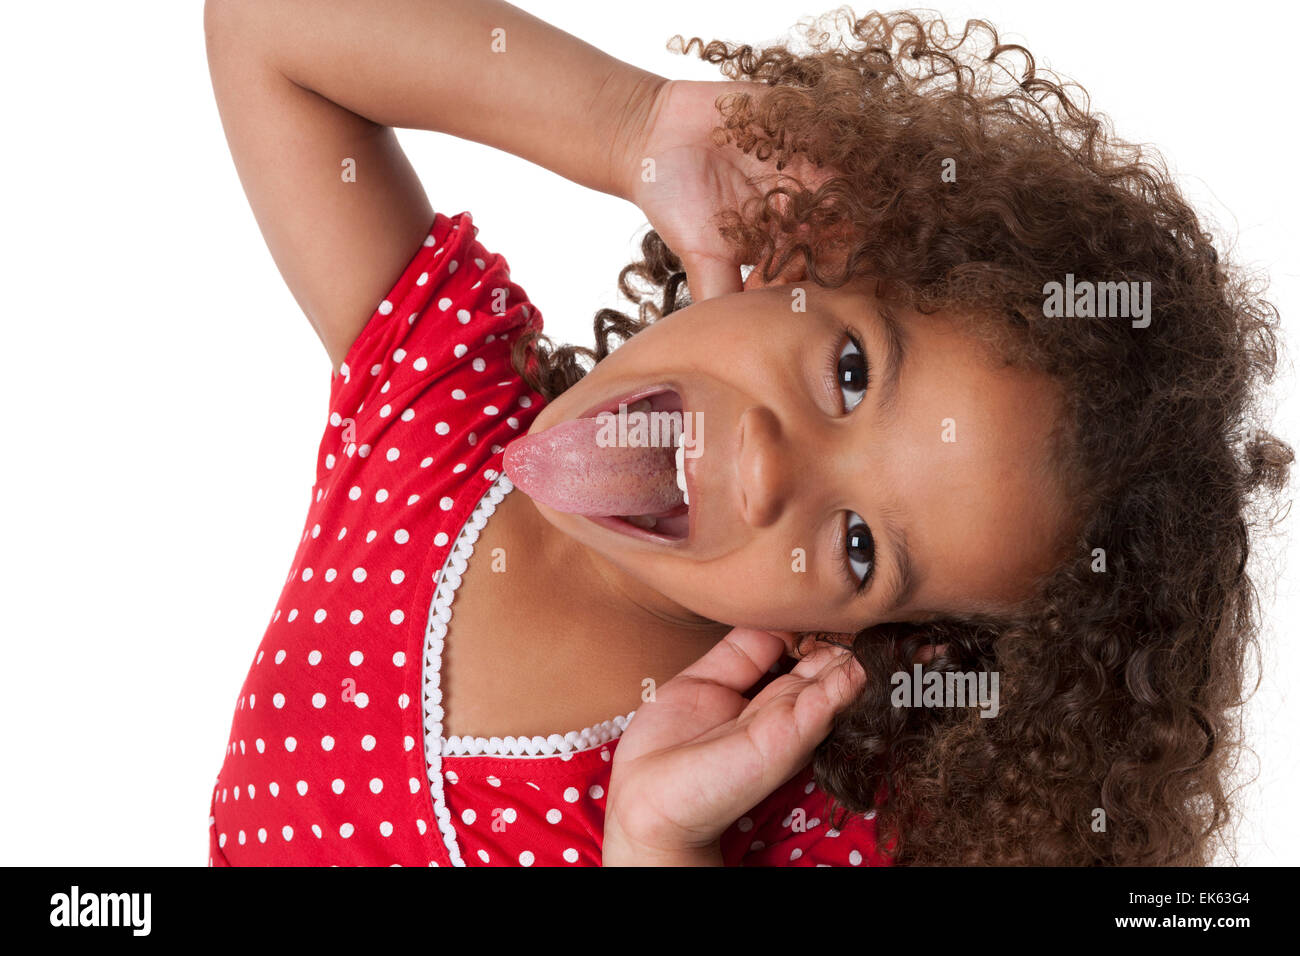 Portrait of a five year old girl making faces and sticking out her tongue on white background Stock Photo